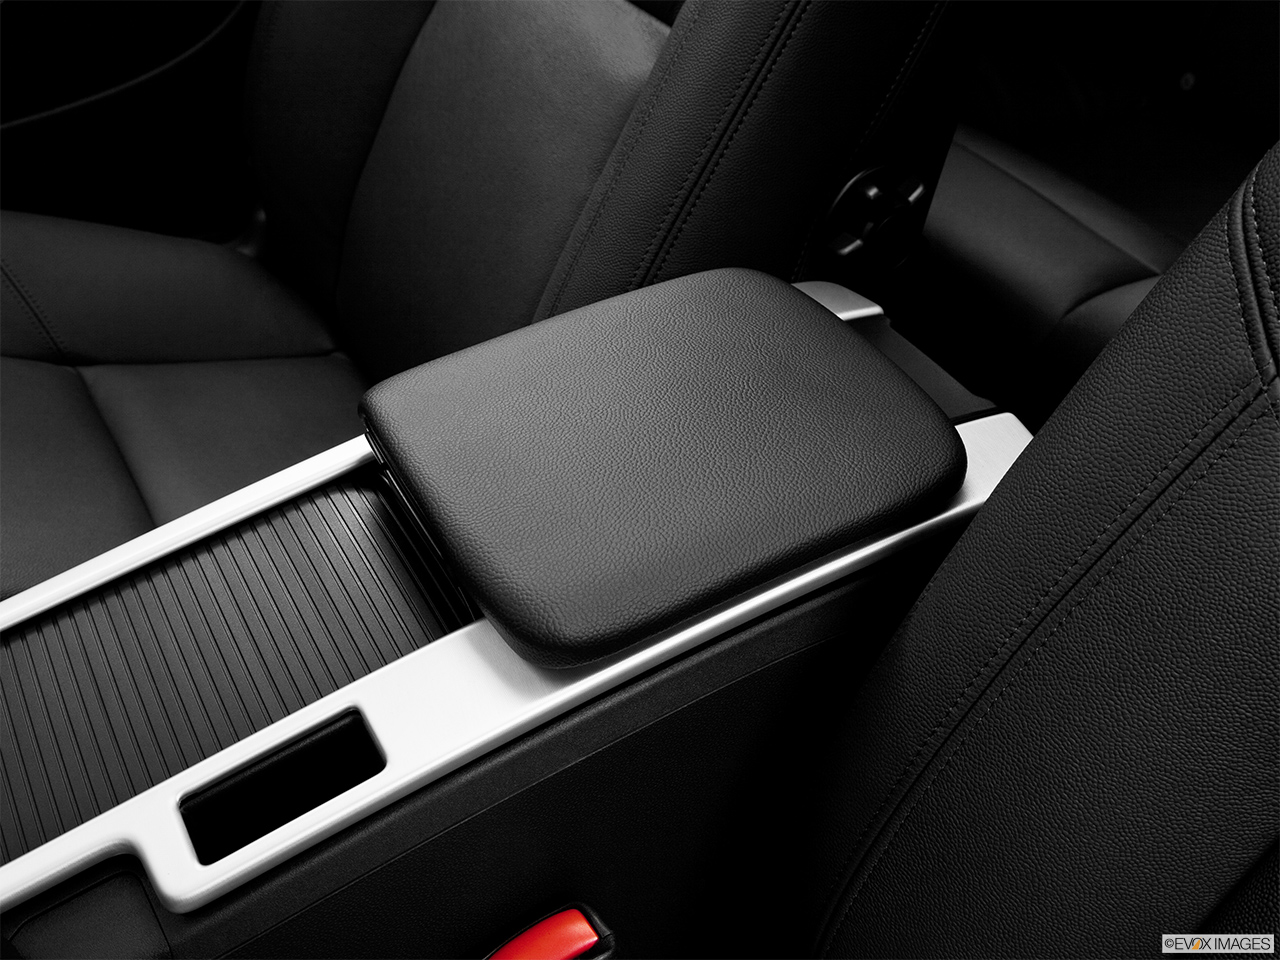 2013 Volvo C30 T5 Premier Plus Front center console with closed lid, from driver's side looking down